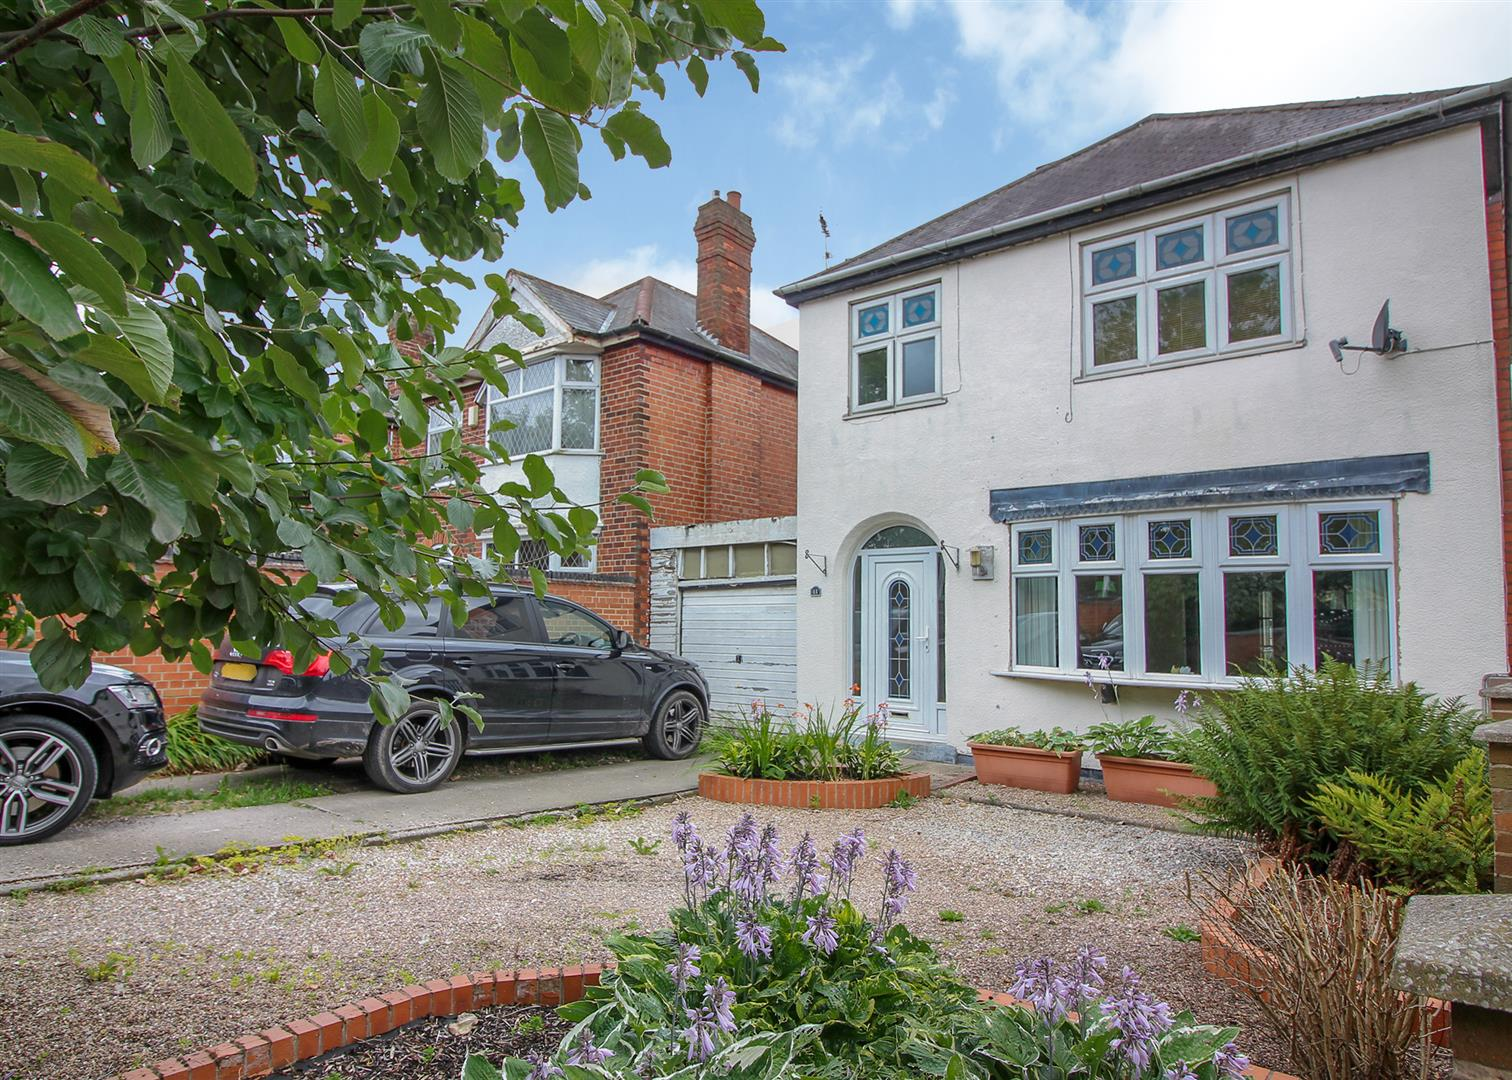 3 Bedrooms House for sale in Trowell Road, Stapleford